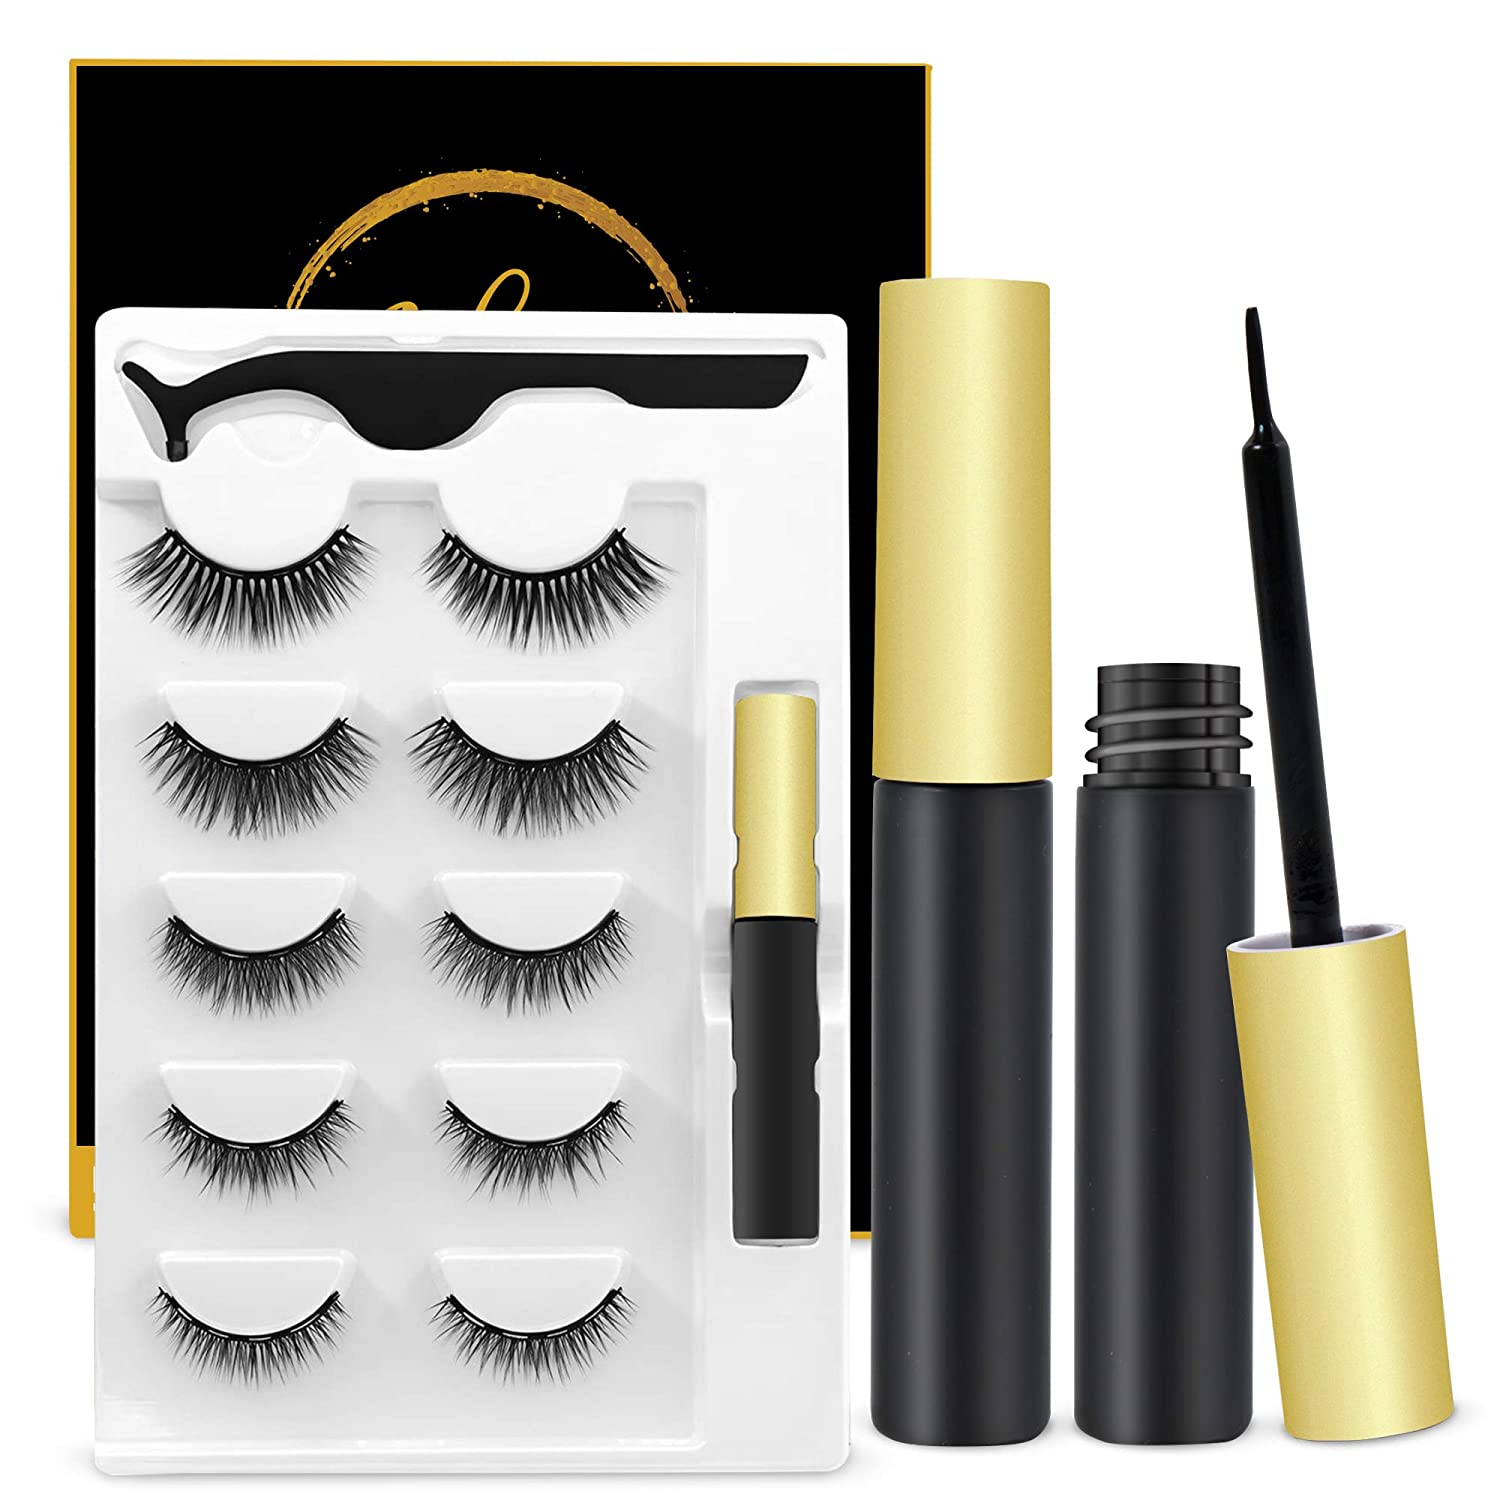 Magnetic Eyelashes With Eyeliner Kit, Reusable, Cuttable, Waterproof Sweat-Proof, Smudged Free, Natural Glamorous Looking For All Occasions, 5 Pairs